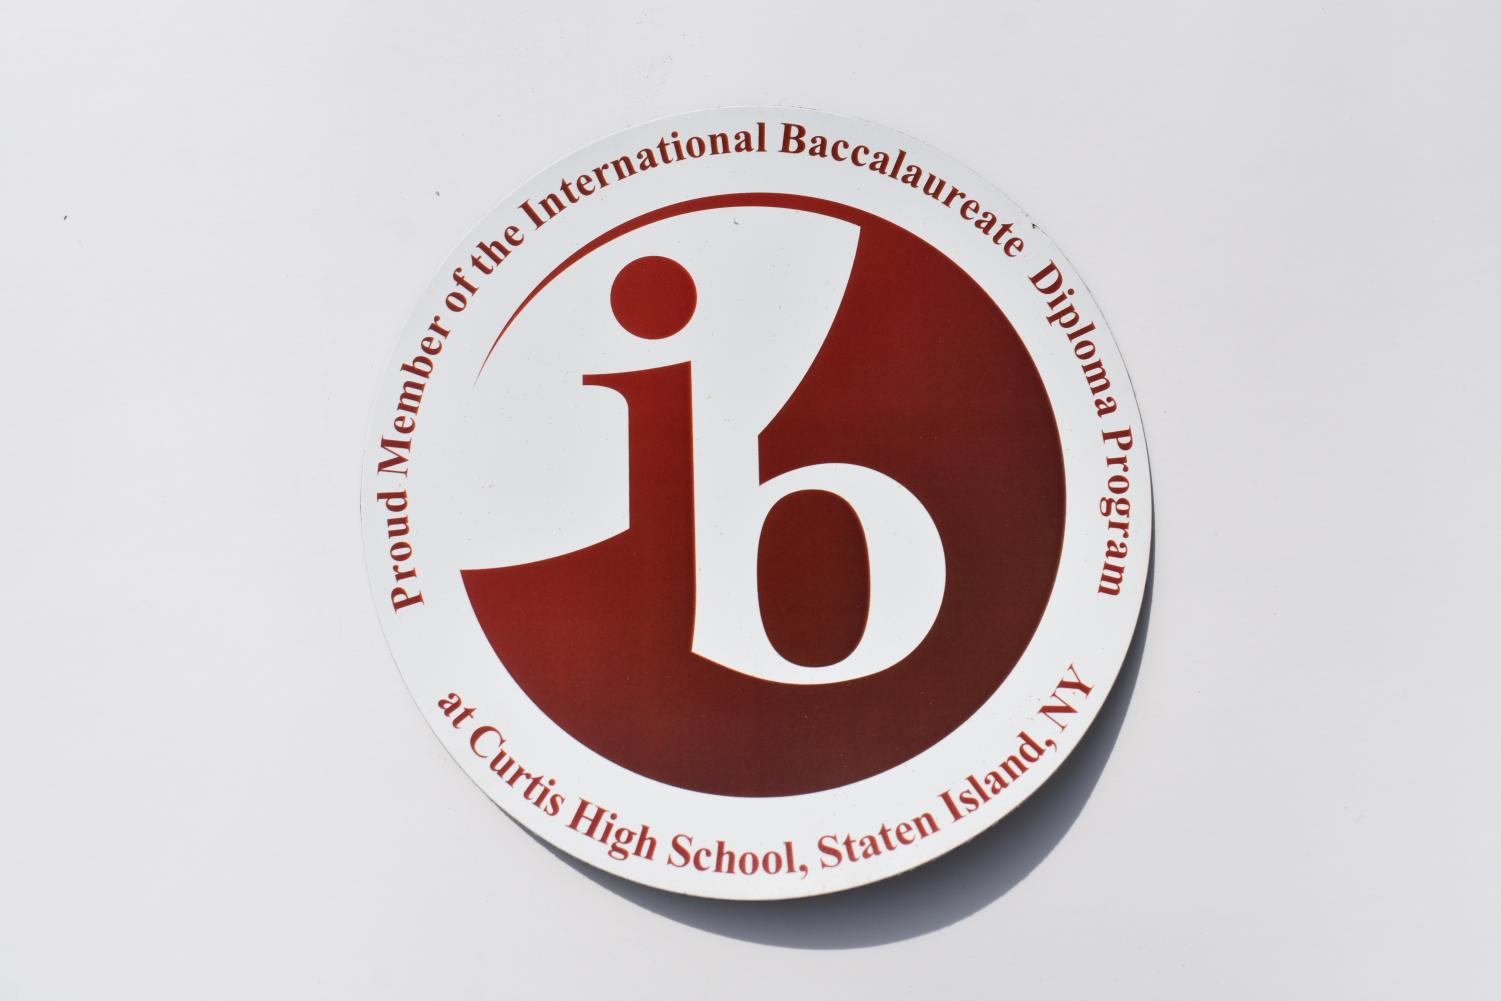 What does it mean to be an IB school?